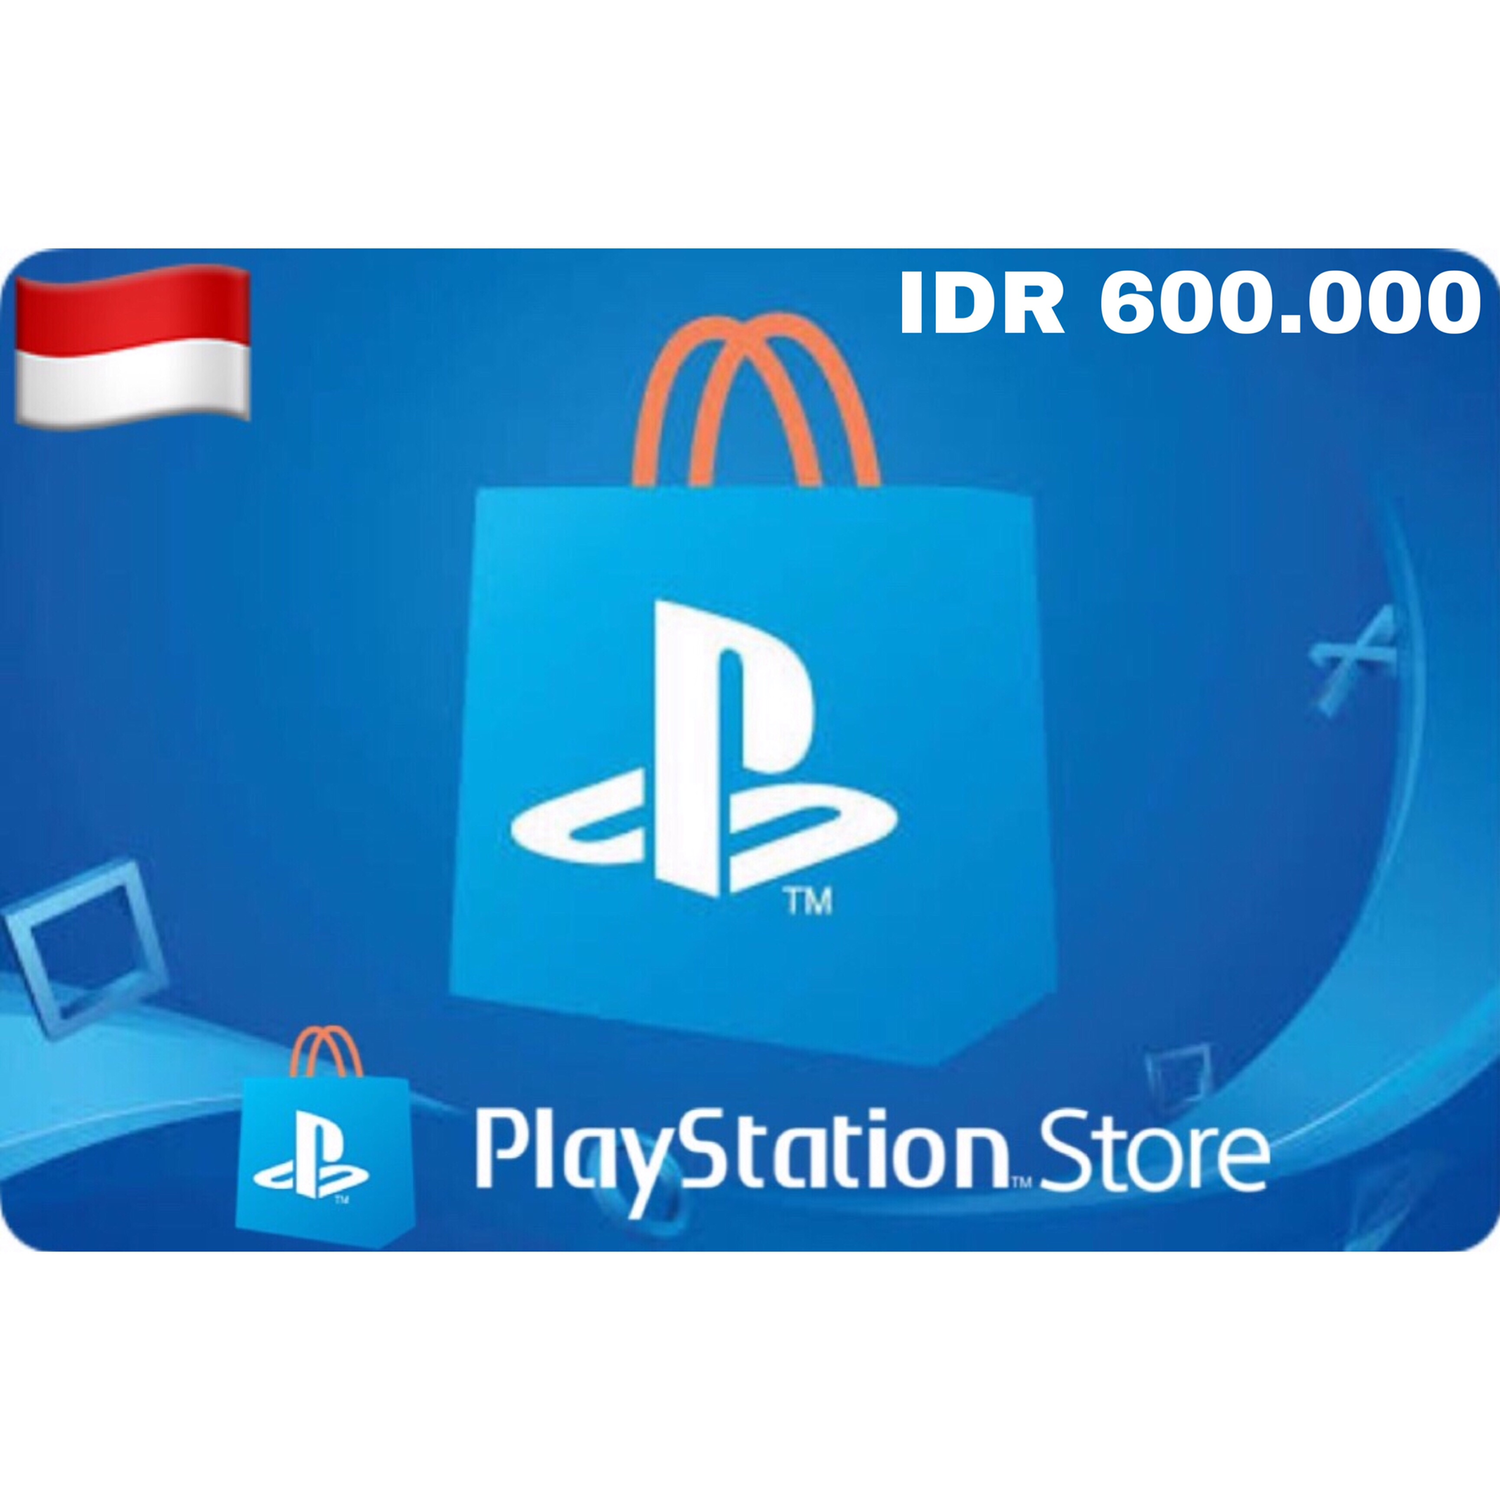 PSN Card - Playstation Network Indonesia/Asia IDR 600.000